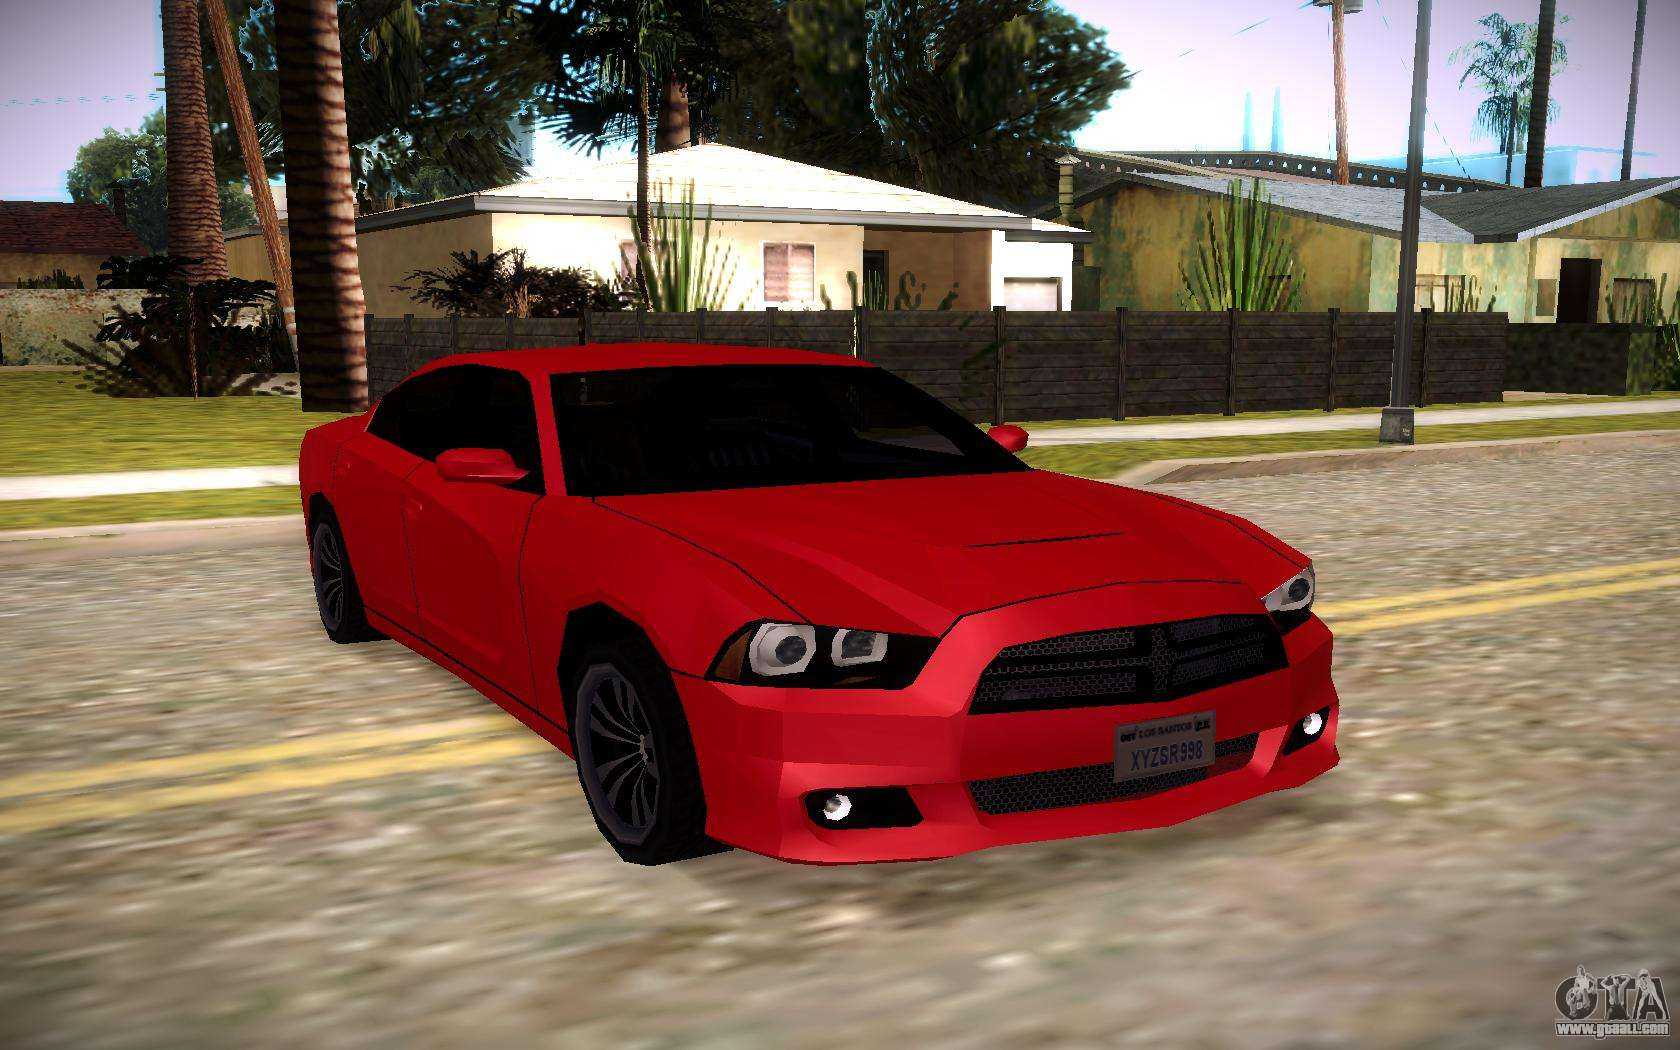 more with dodge v rt t r in dresses dressed package side show up flair added daytona charger new news